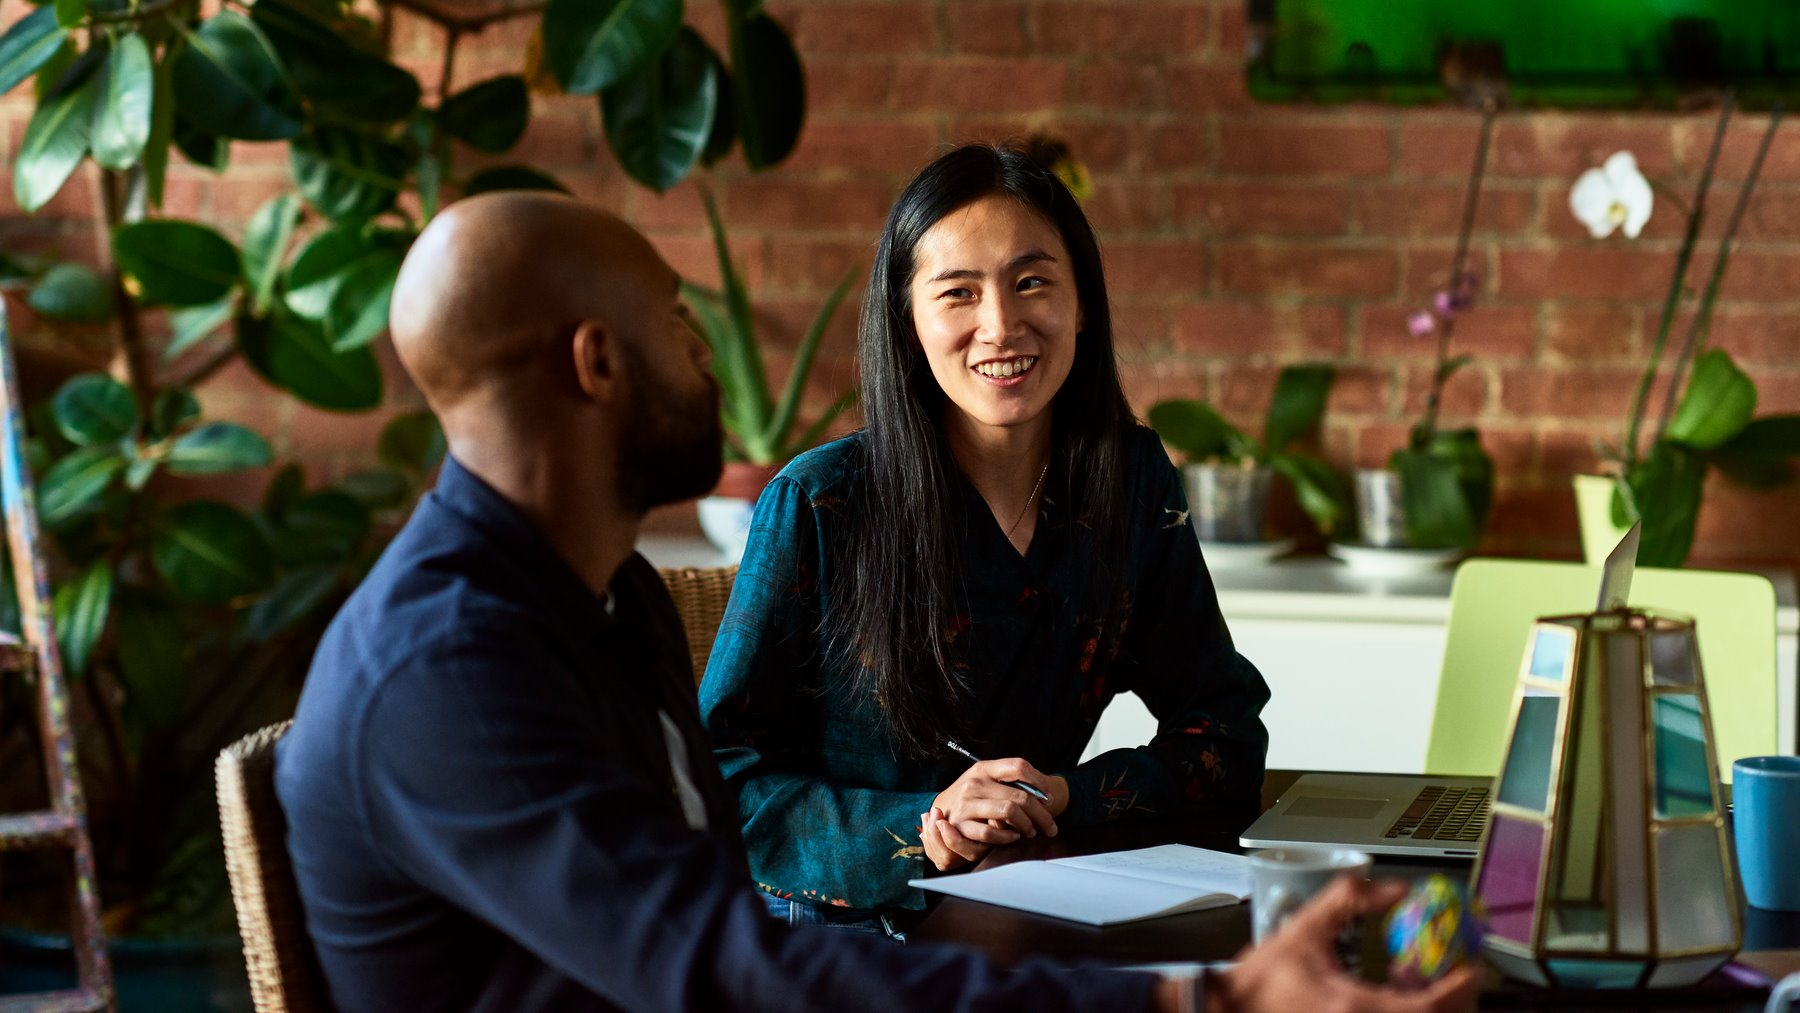 Woman smiling towards male colleague